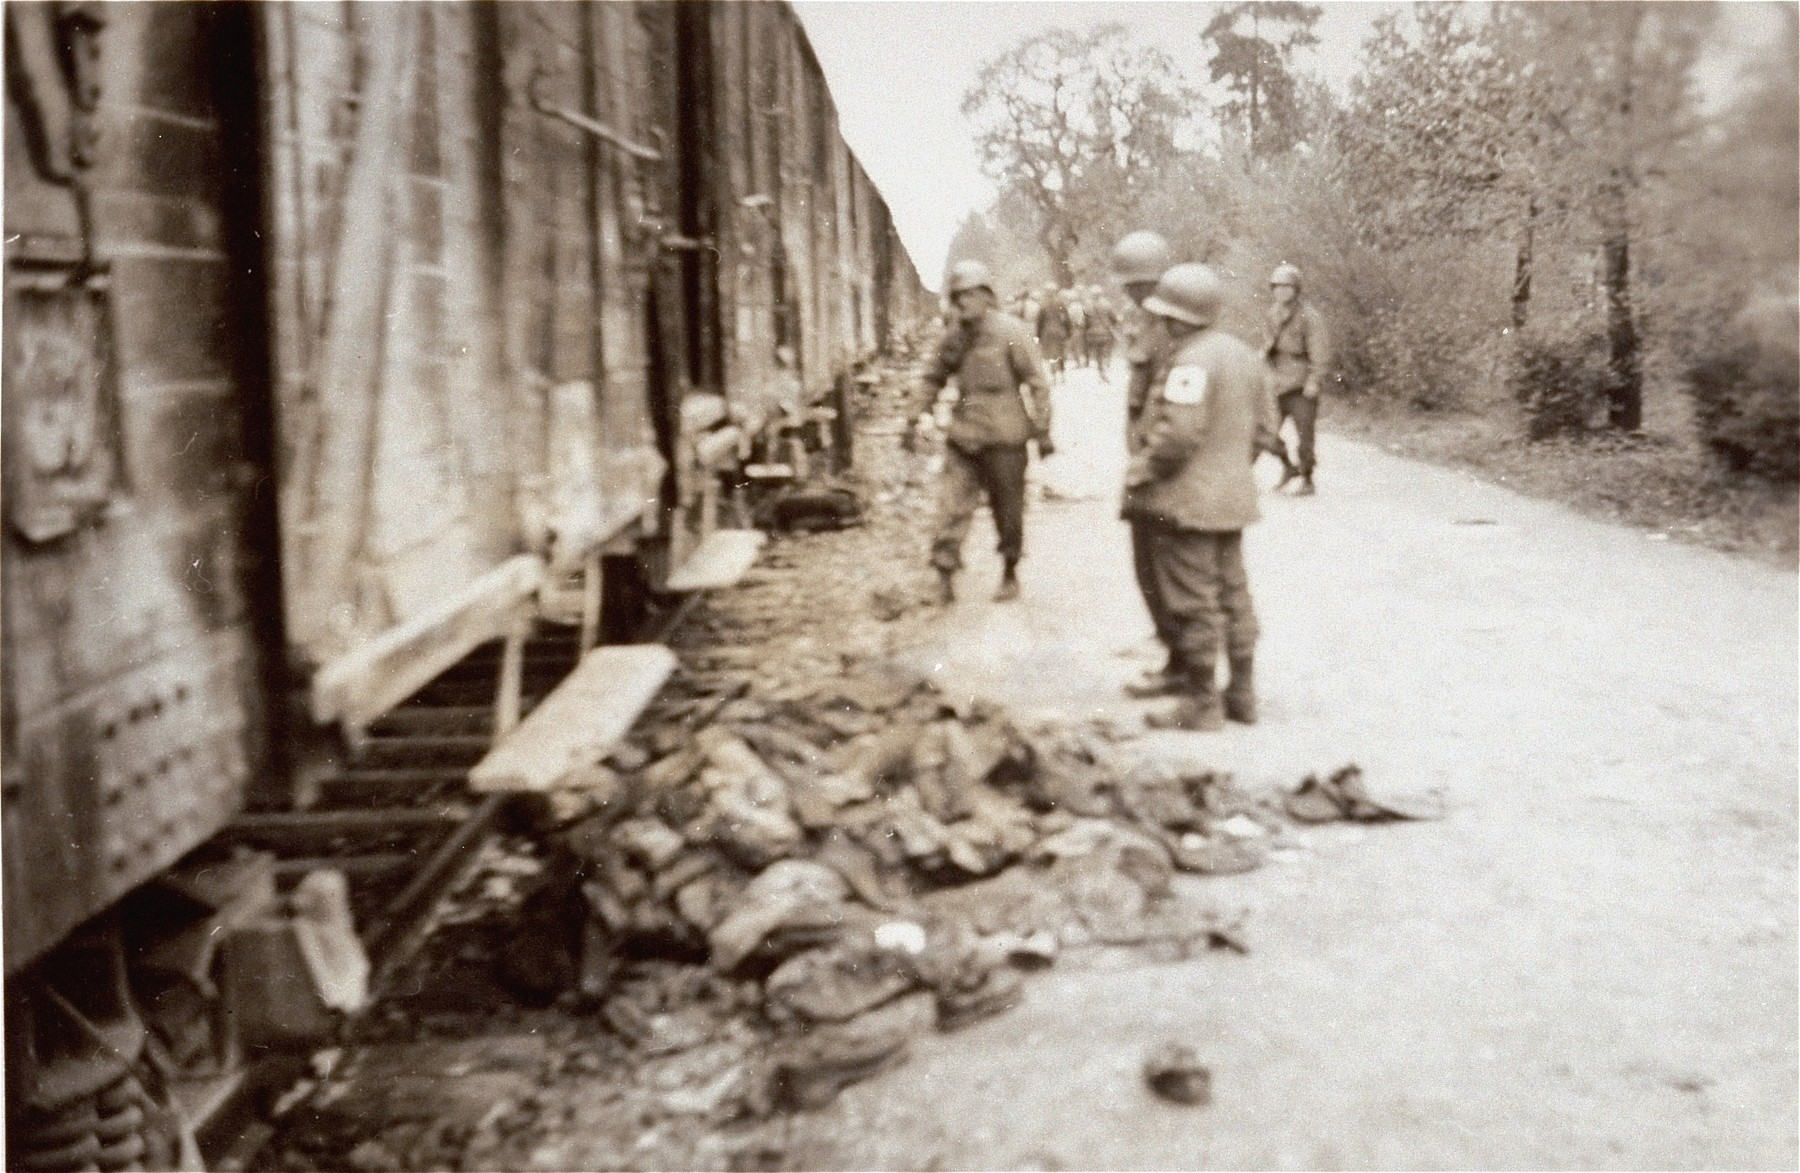 American soldiers view the Dachau death train.  The soldier on the left is Lt. Robert P. Teten.